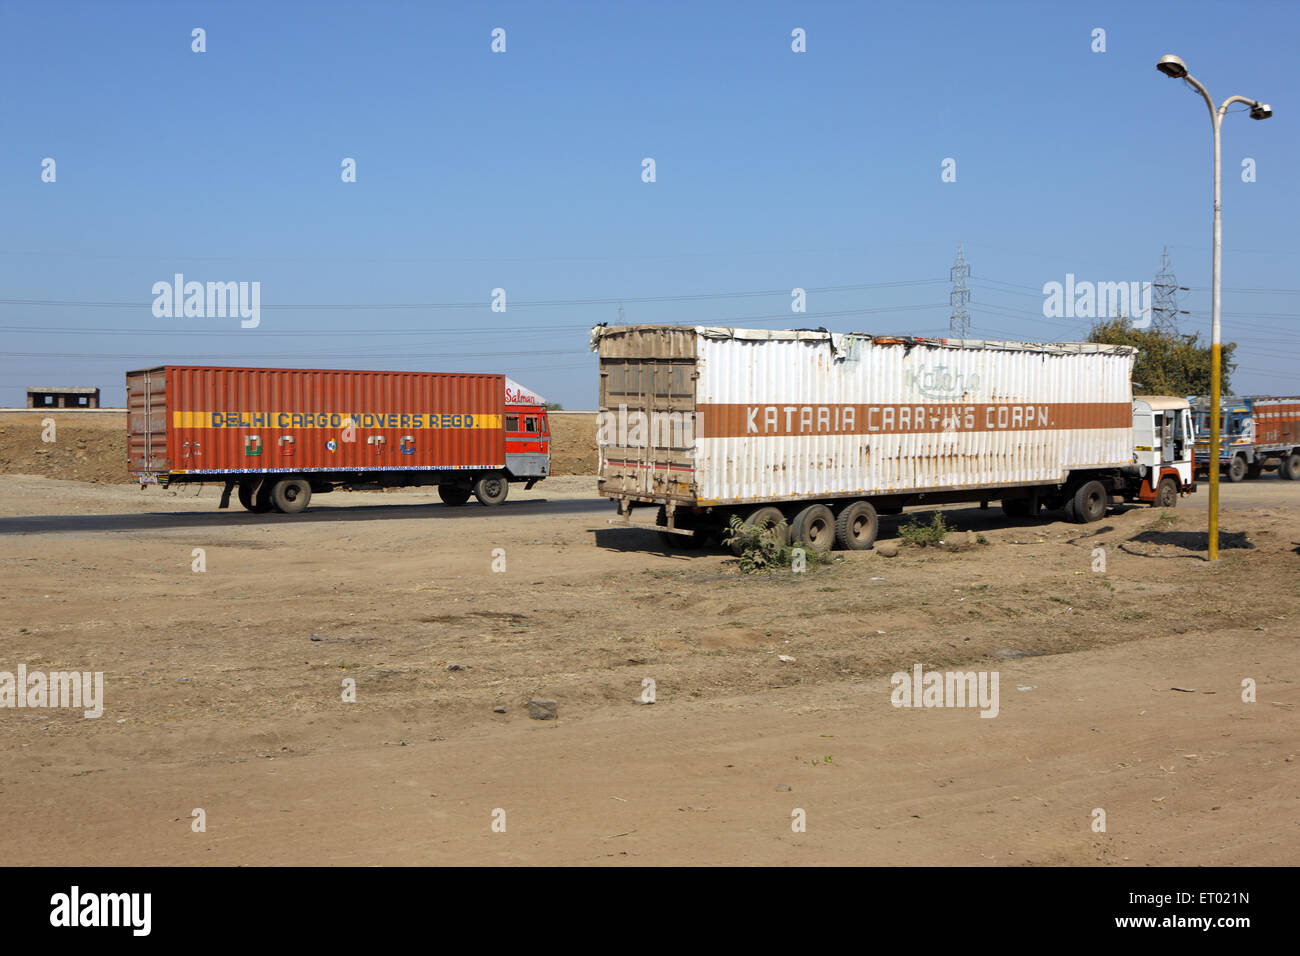 Transporting of containers on state highway - Stock Image